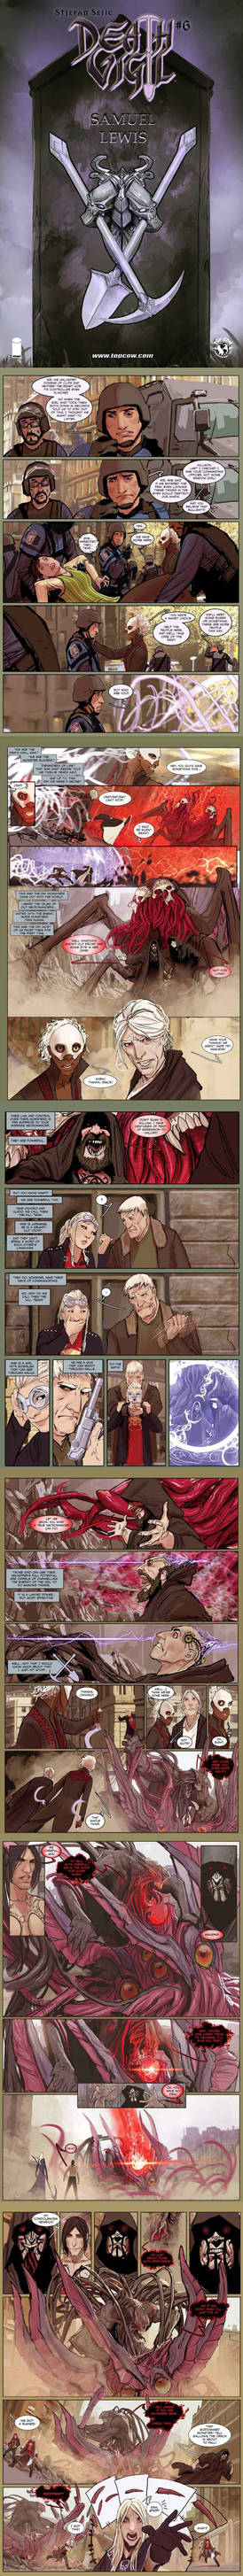 death vigil 6 preview pages